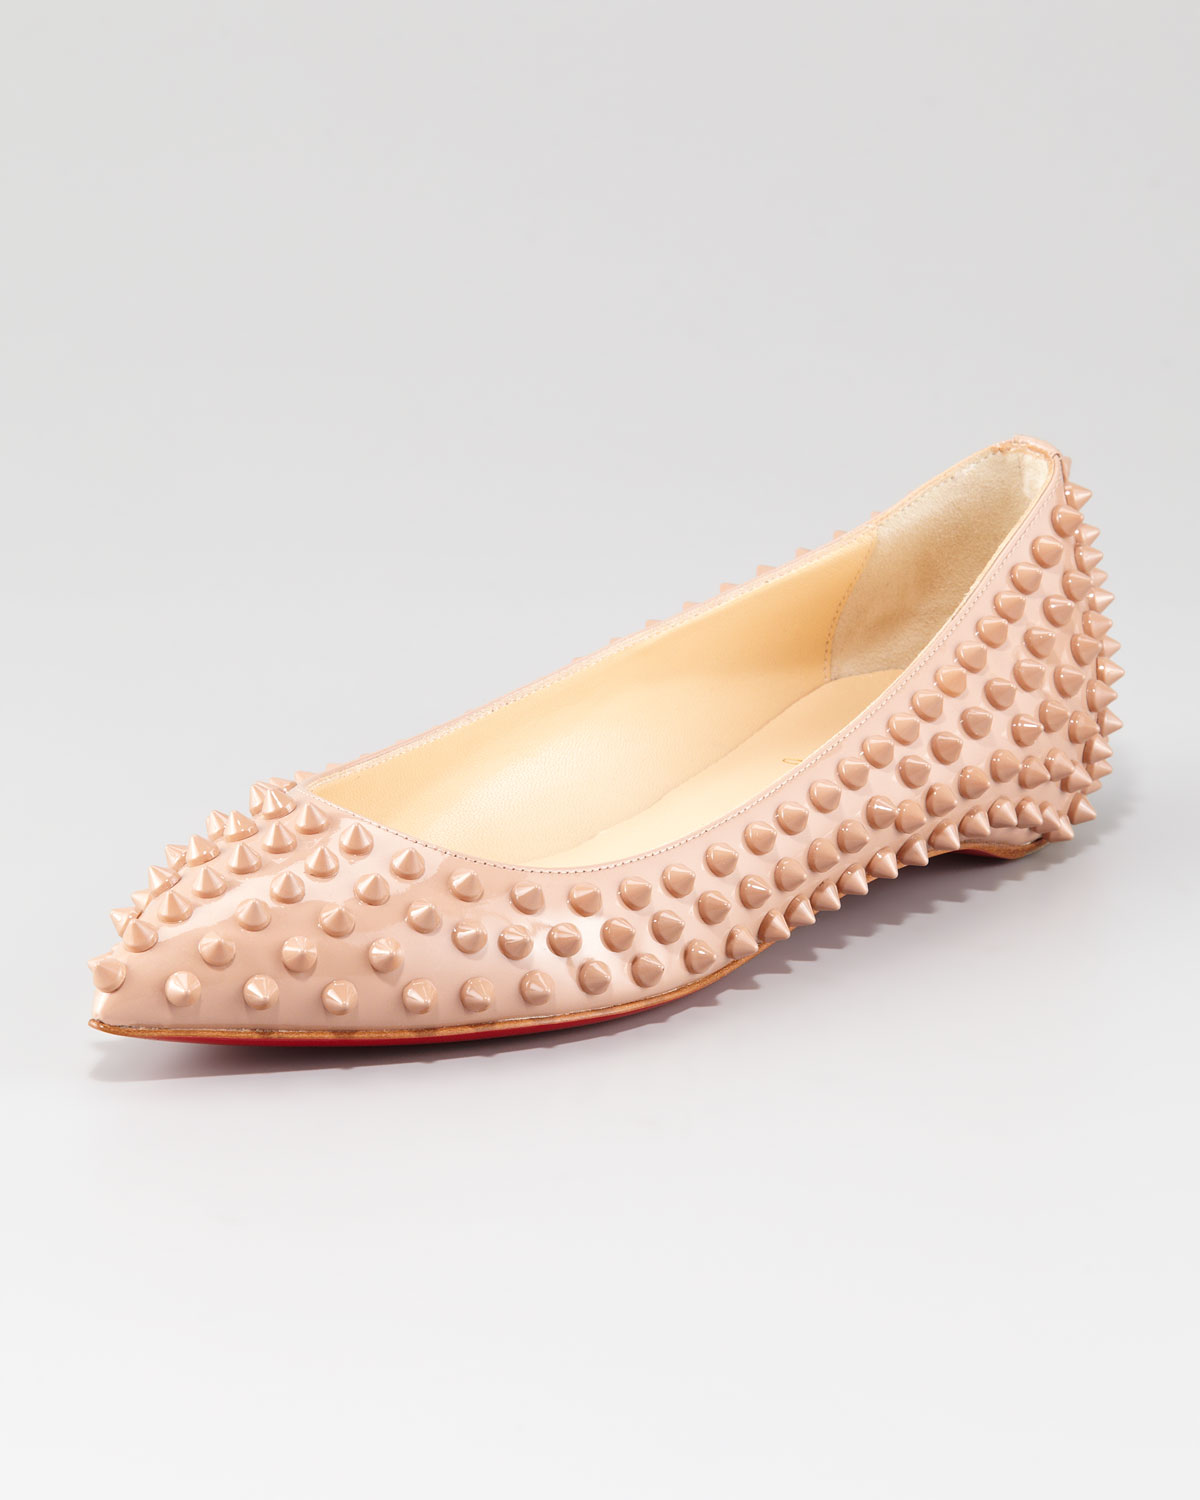 402556466a7d Lyst - Christian Louboutin Pigalle Spiked Skimmer Flat in Natural